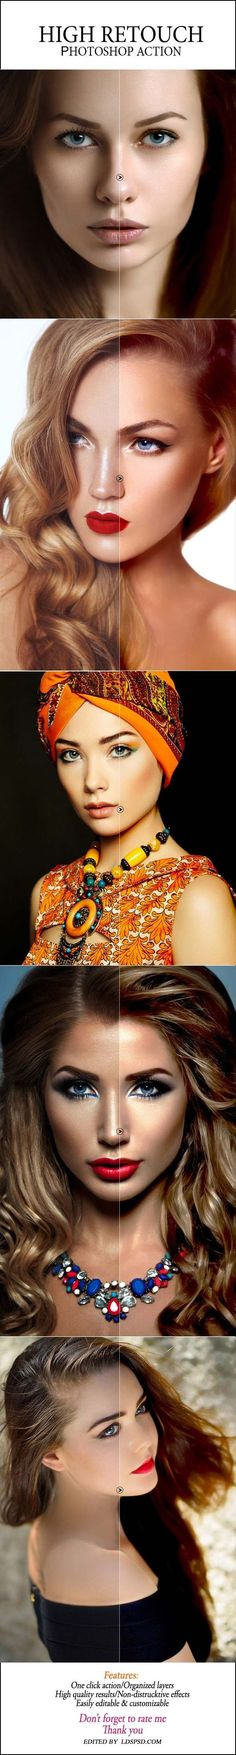 High Retouch Creative Photoshop Action